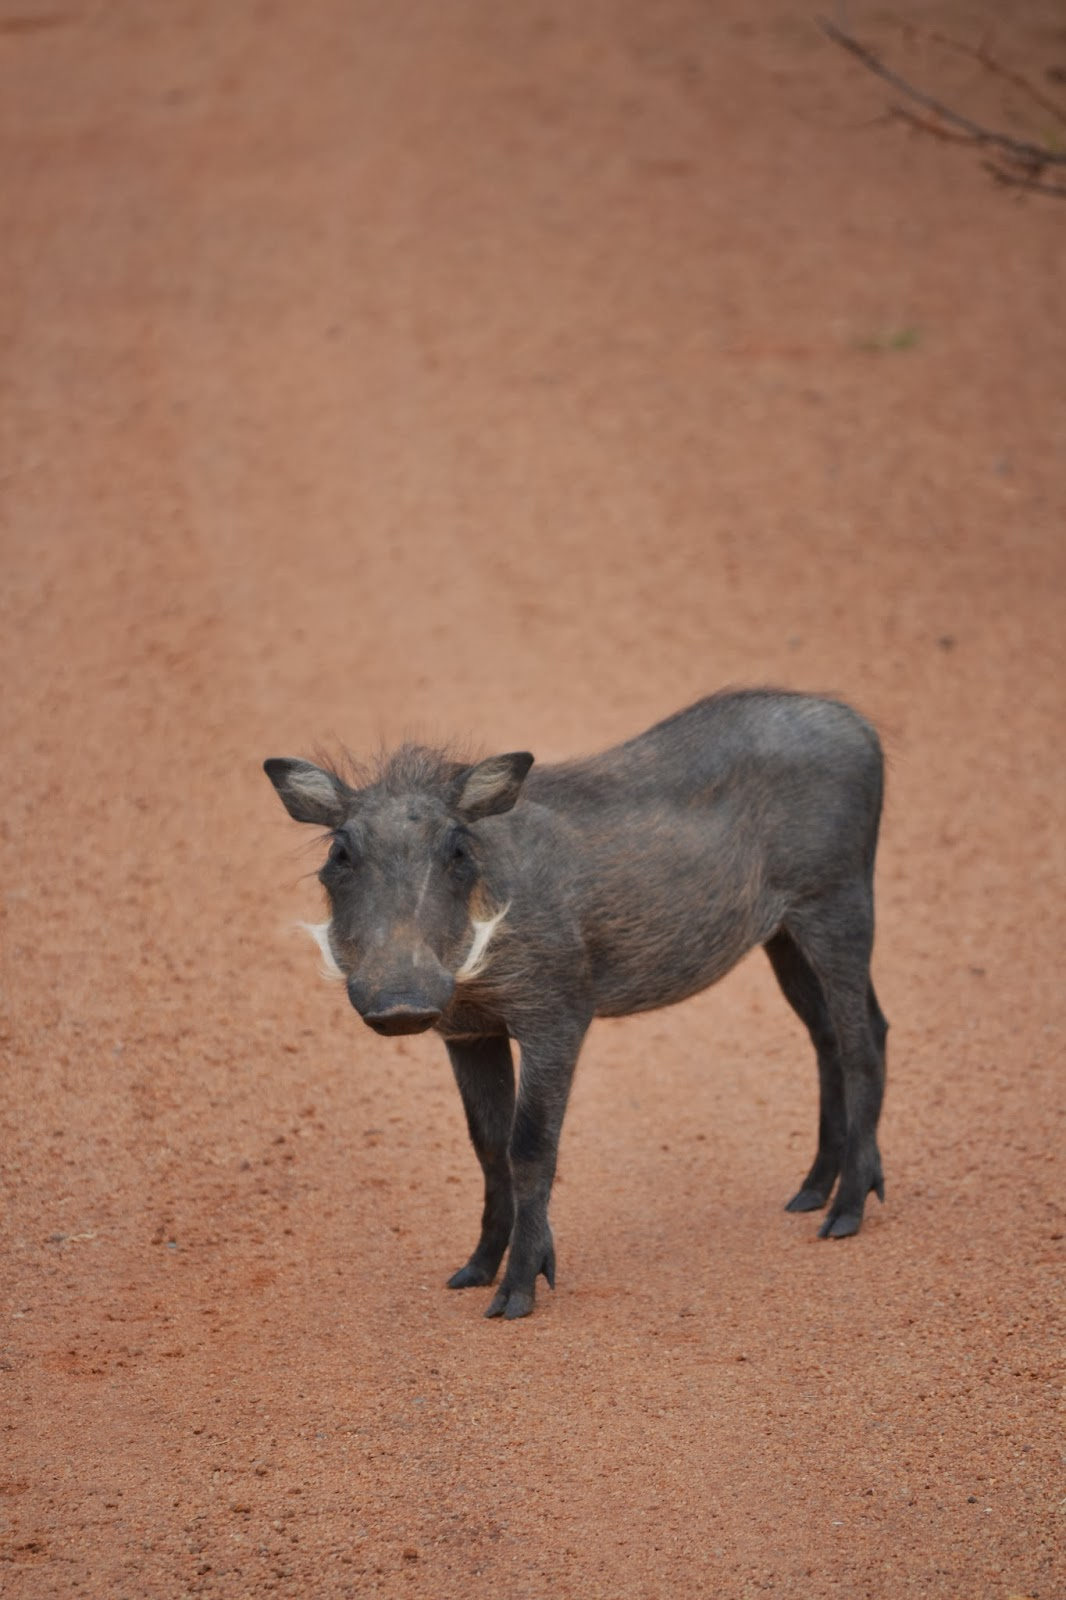 warthog standing in a dirt road